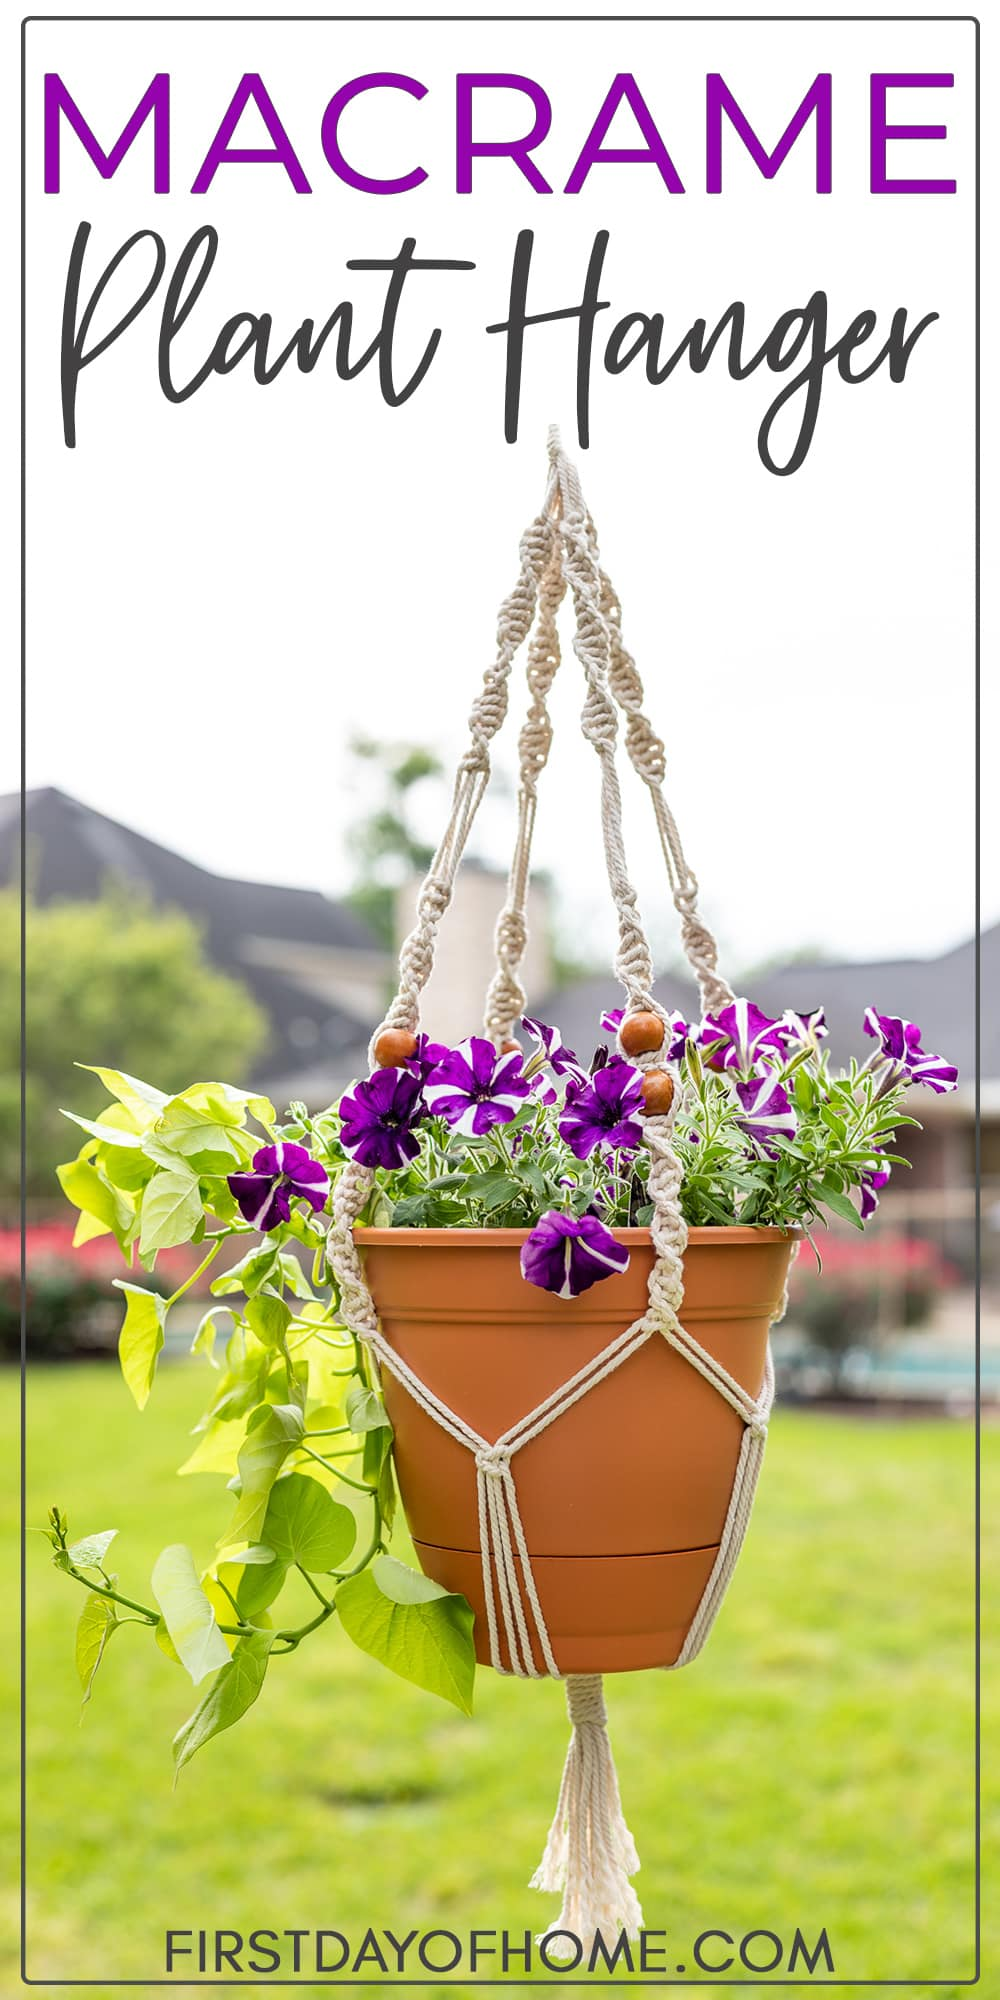 "Macrame plant hanger with petunias and sweet potato vine with text overlay reading ""Macrame Plant Hanger"""